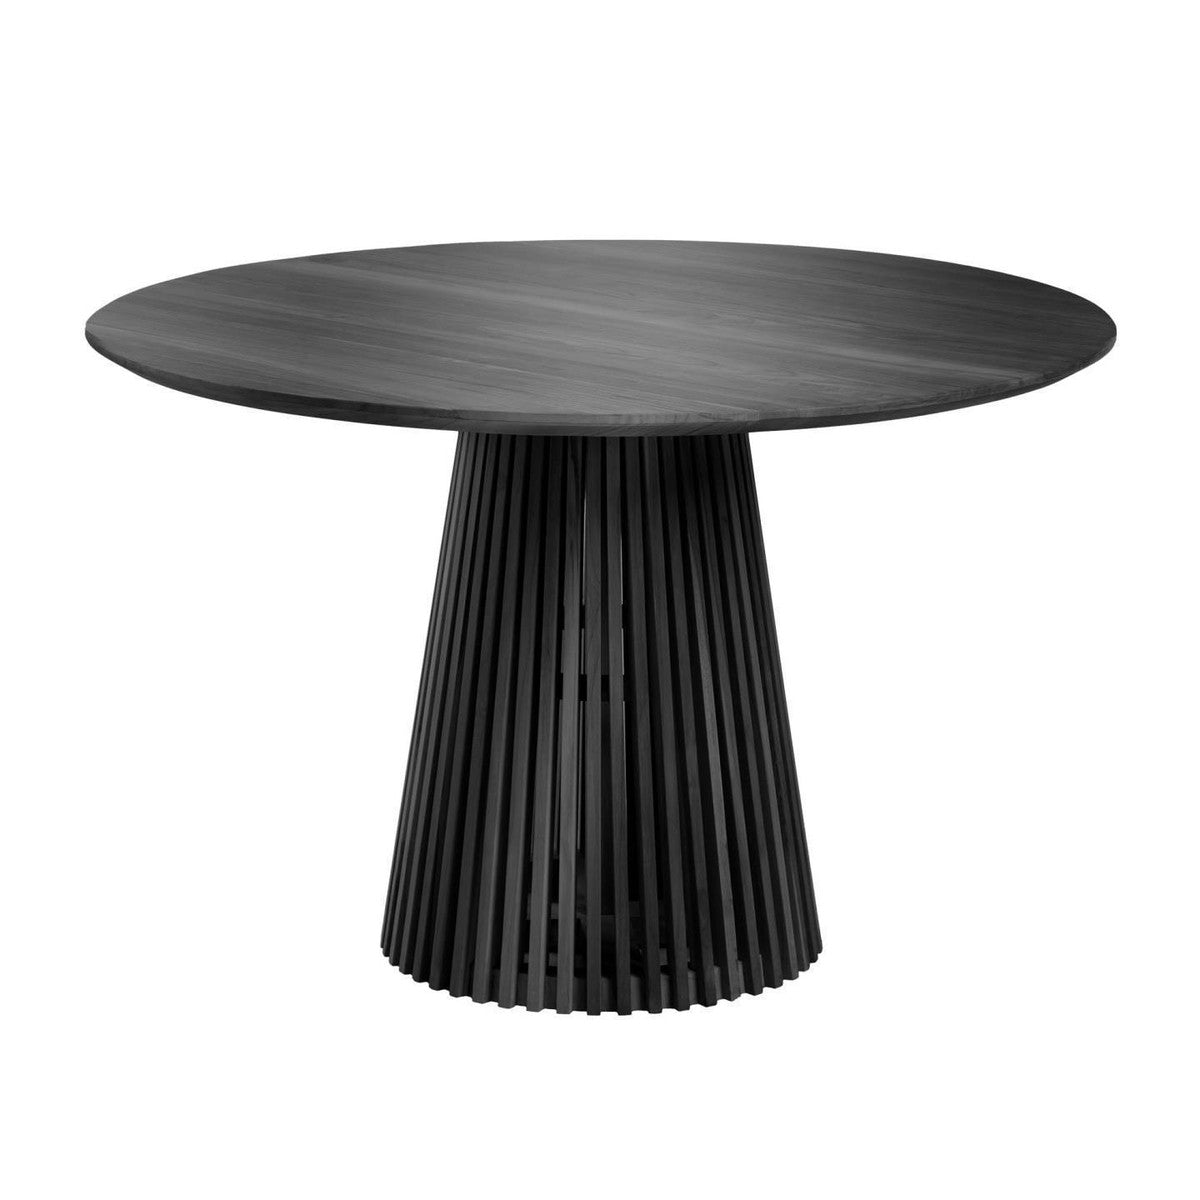 Finn Round Dining Table | Black